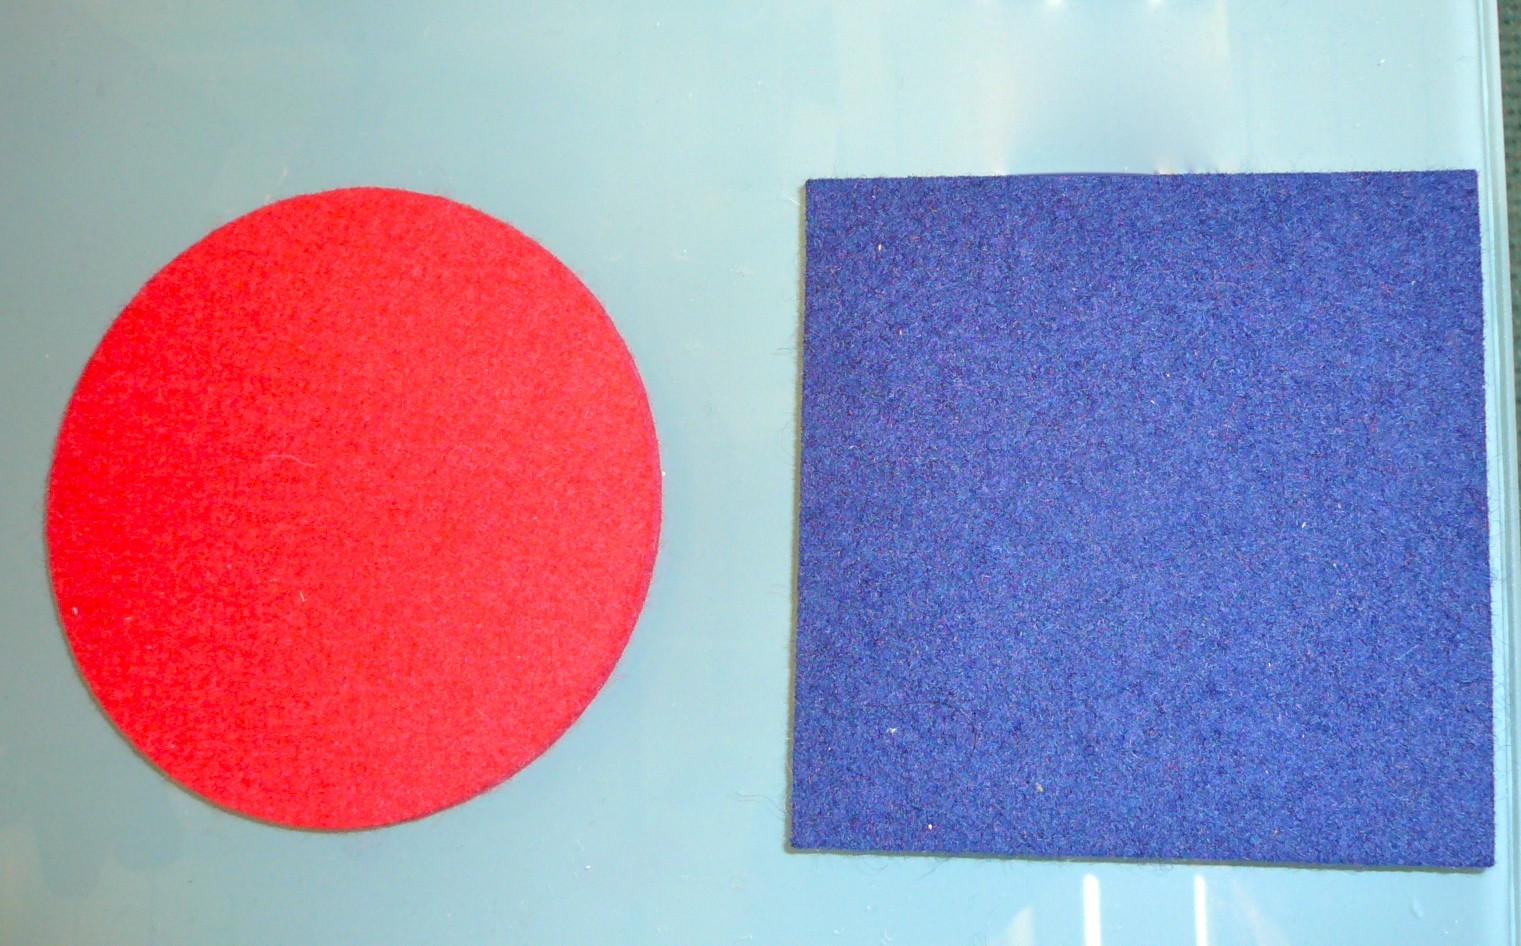 daff felt coaster small – square and round 4x4/ ø4""